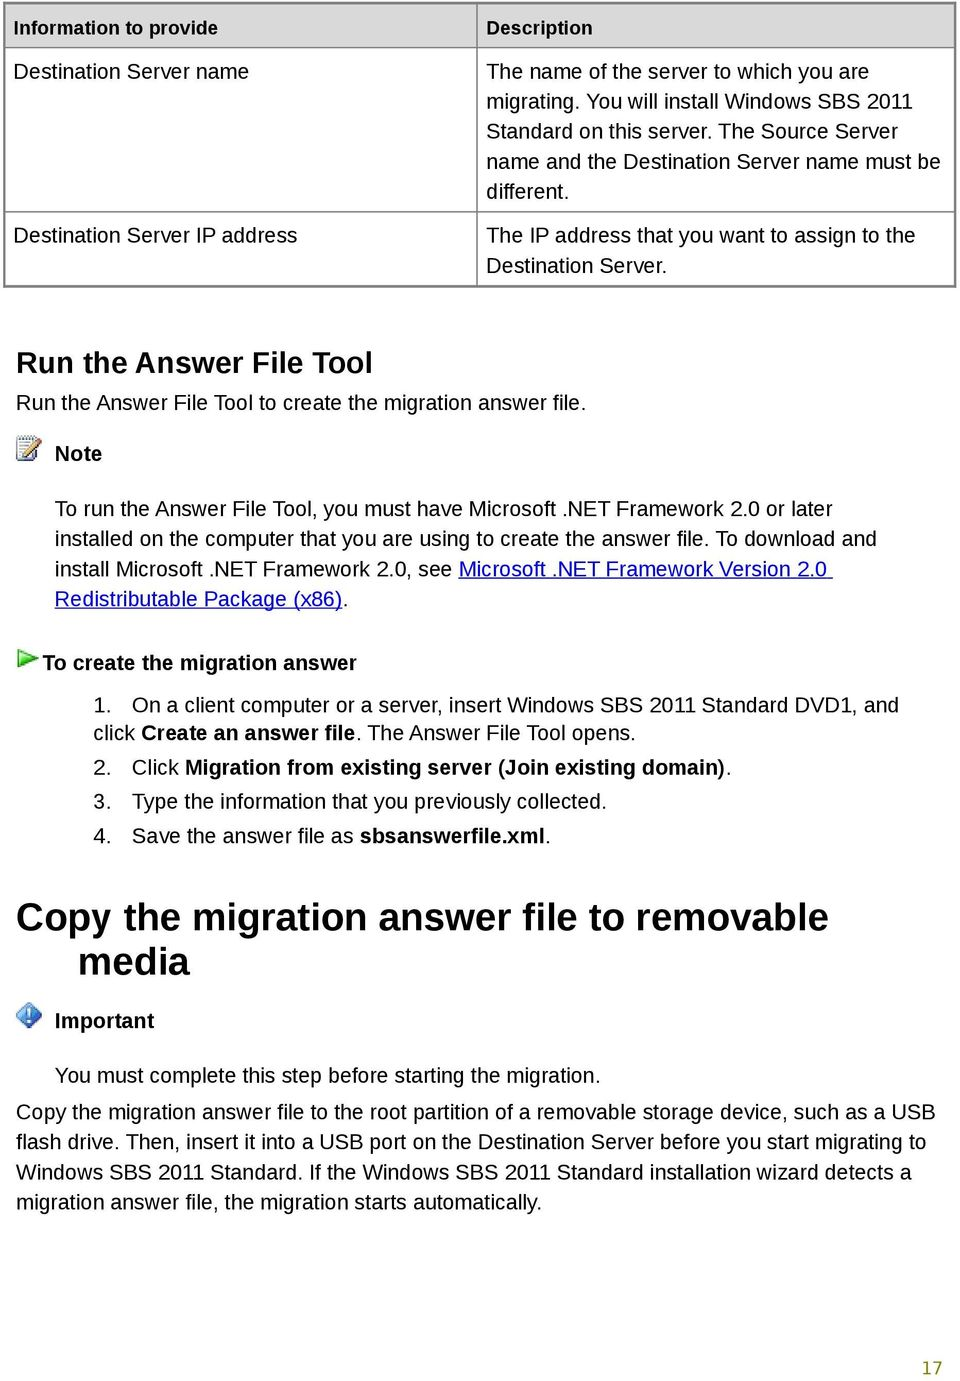 Run the Answer File Tool Run the Answer File Tool to create the migration answer file. To run the Answer File Tool, you must have Microsoft.NET Framework 2.